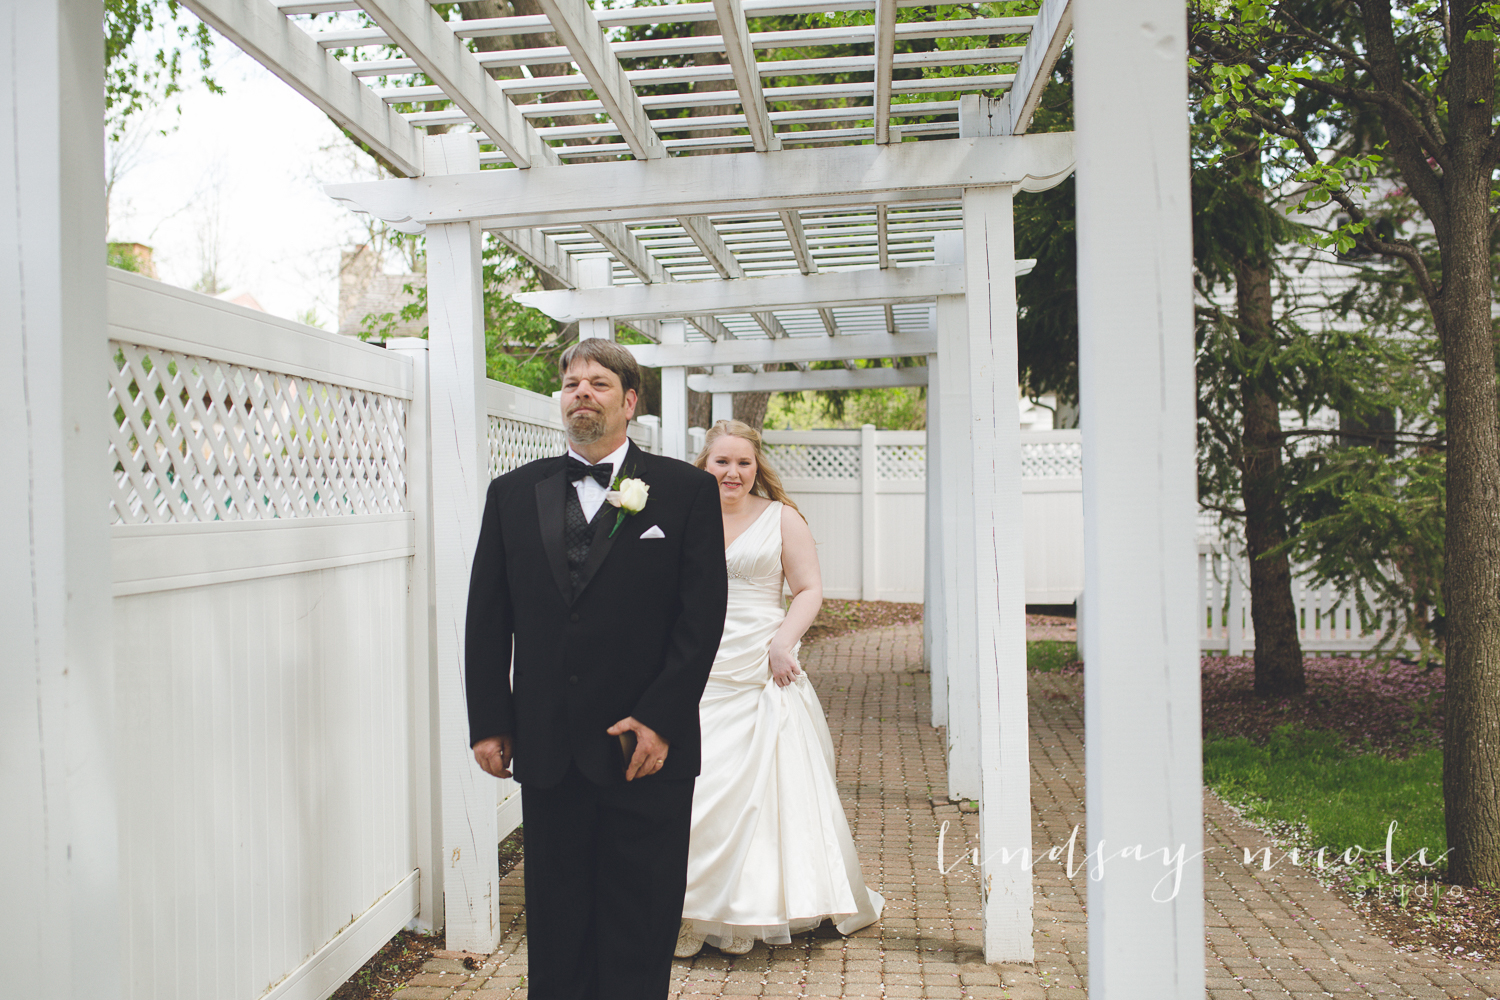 Bethanny not only wanted a first look with Gary, but she wanted to have a first look with her dad.